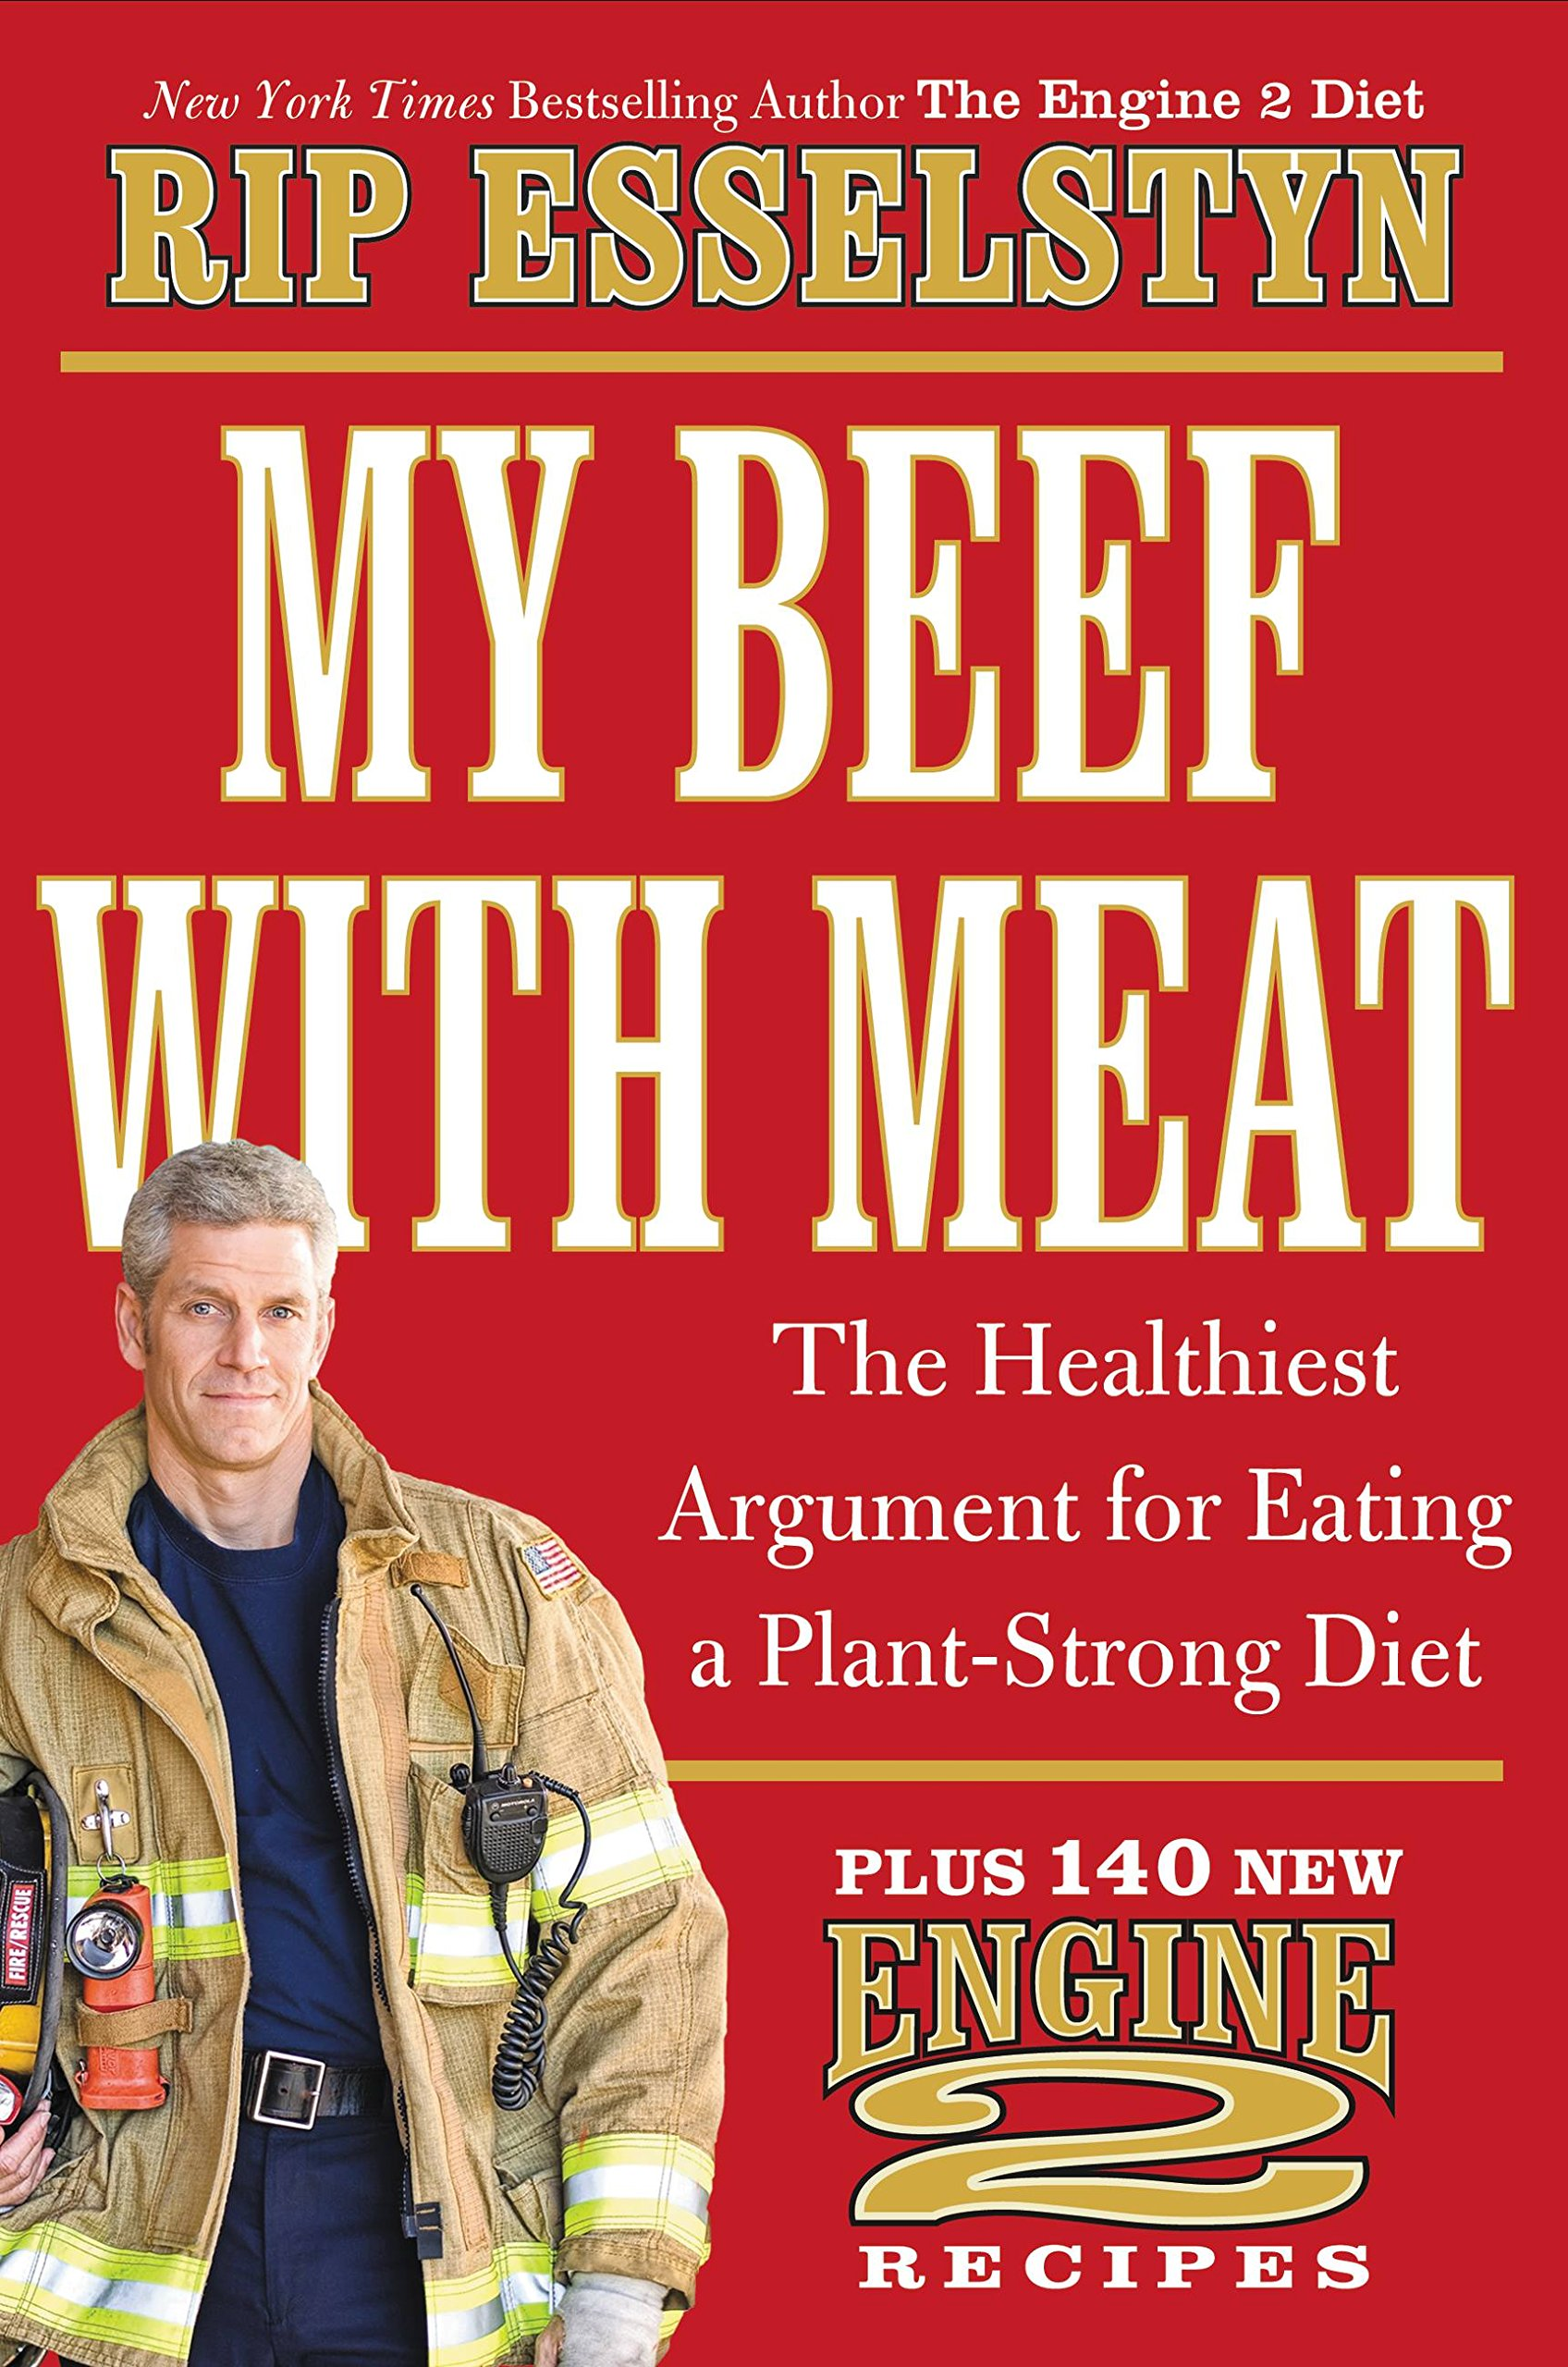 My beef with meat the healthiest argument for eating a plant my beef with meat the healthiest argument for eating a plant strong diet plus 140 new engine 2 recipes rip esselstyn 9781455509362 amazon books fandeluxe Choice Image